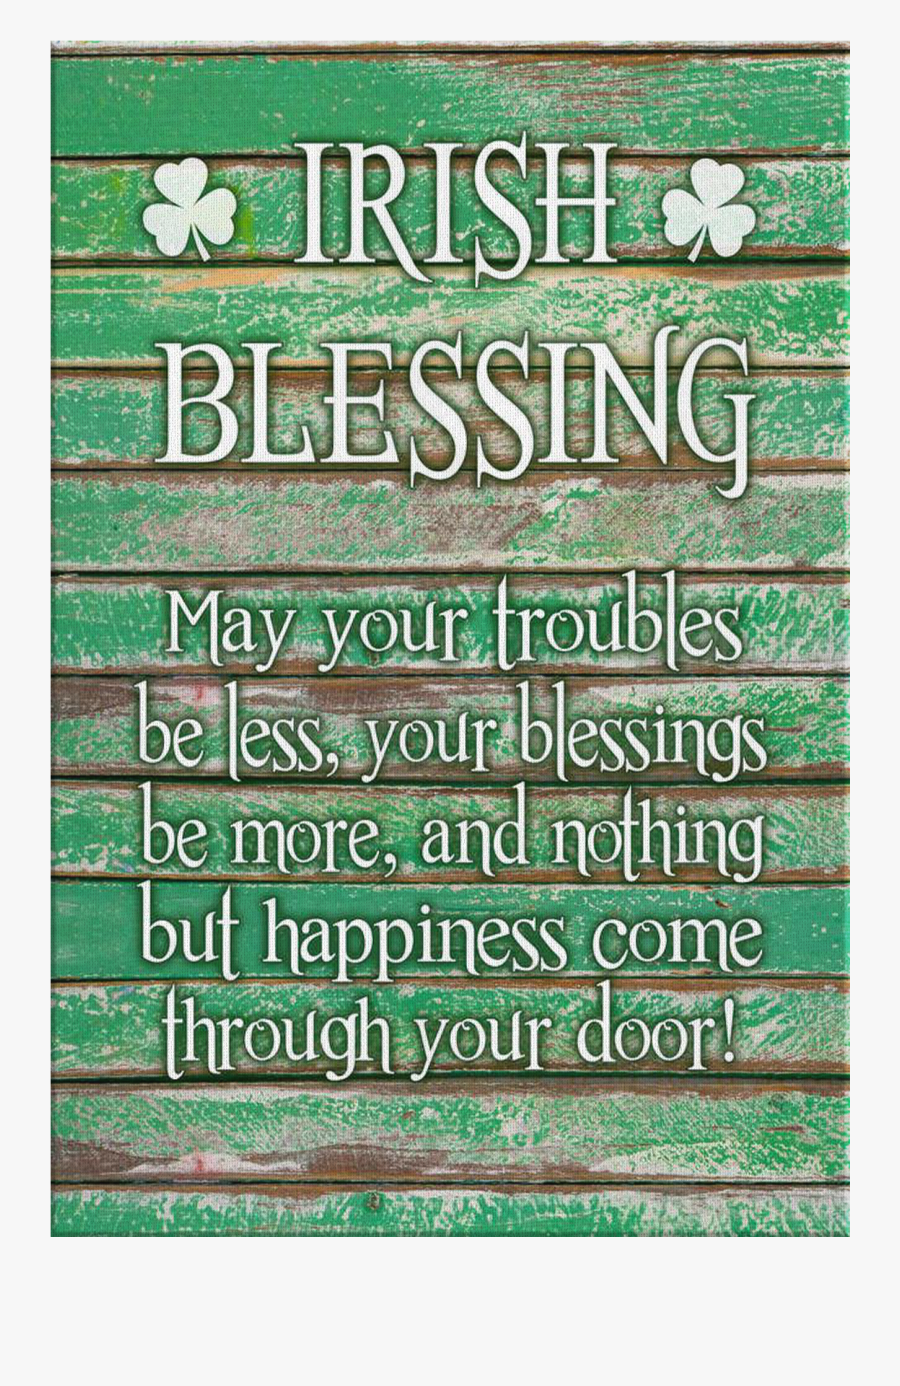 May Your Troubles Be Less - May Your Troubles Be Less And Your Blessings Be More, Transparent Clipart